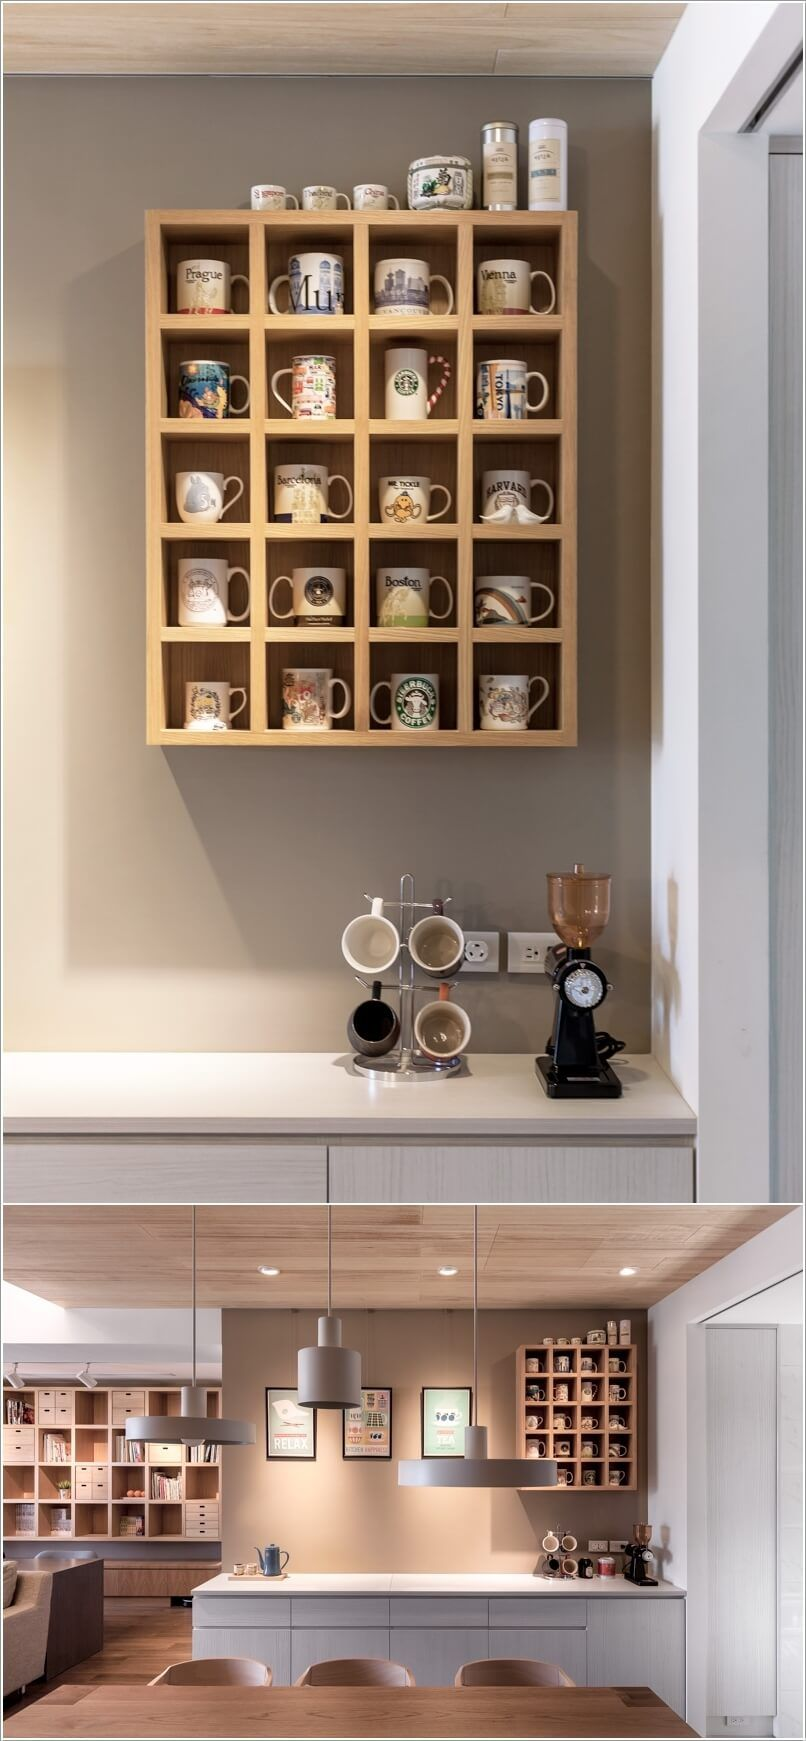 Cool And Creative Mug Storage Ideas For Your Kitchen Mug Storage Storage House Diy Kitchen Storage